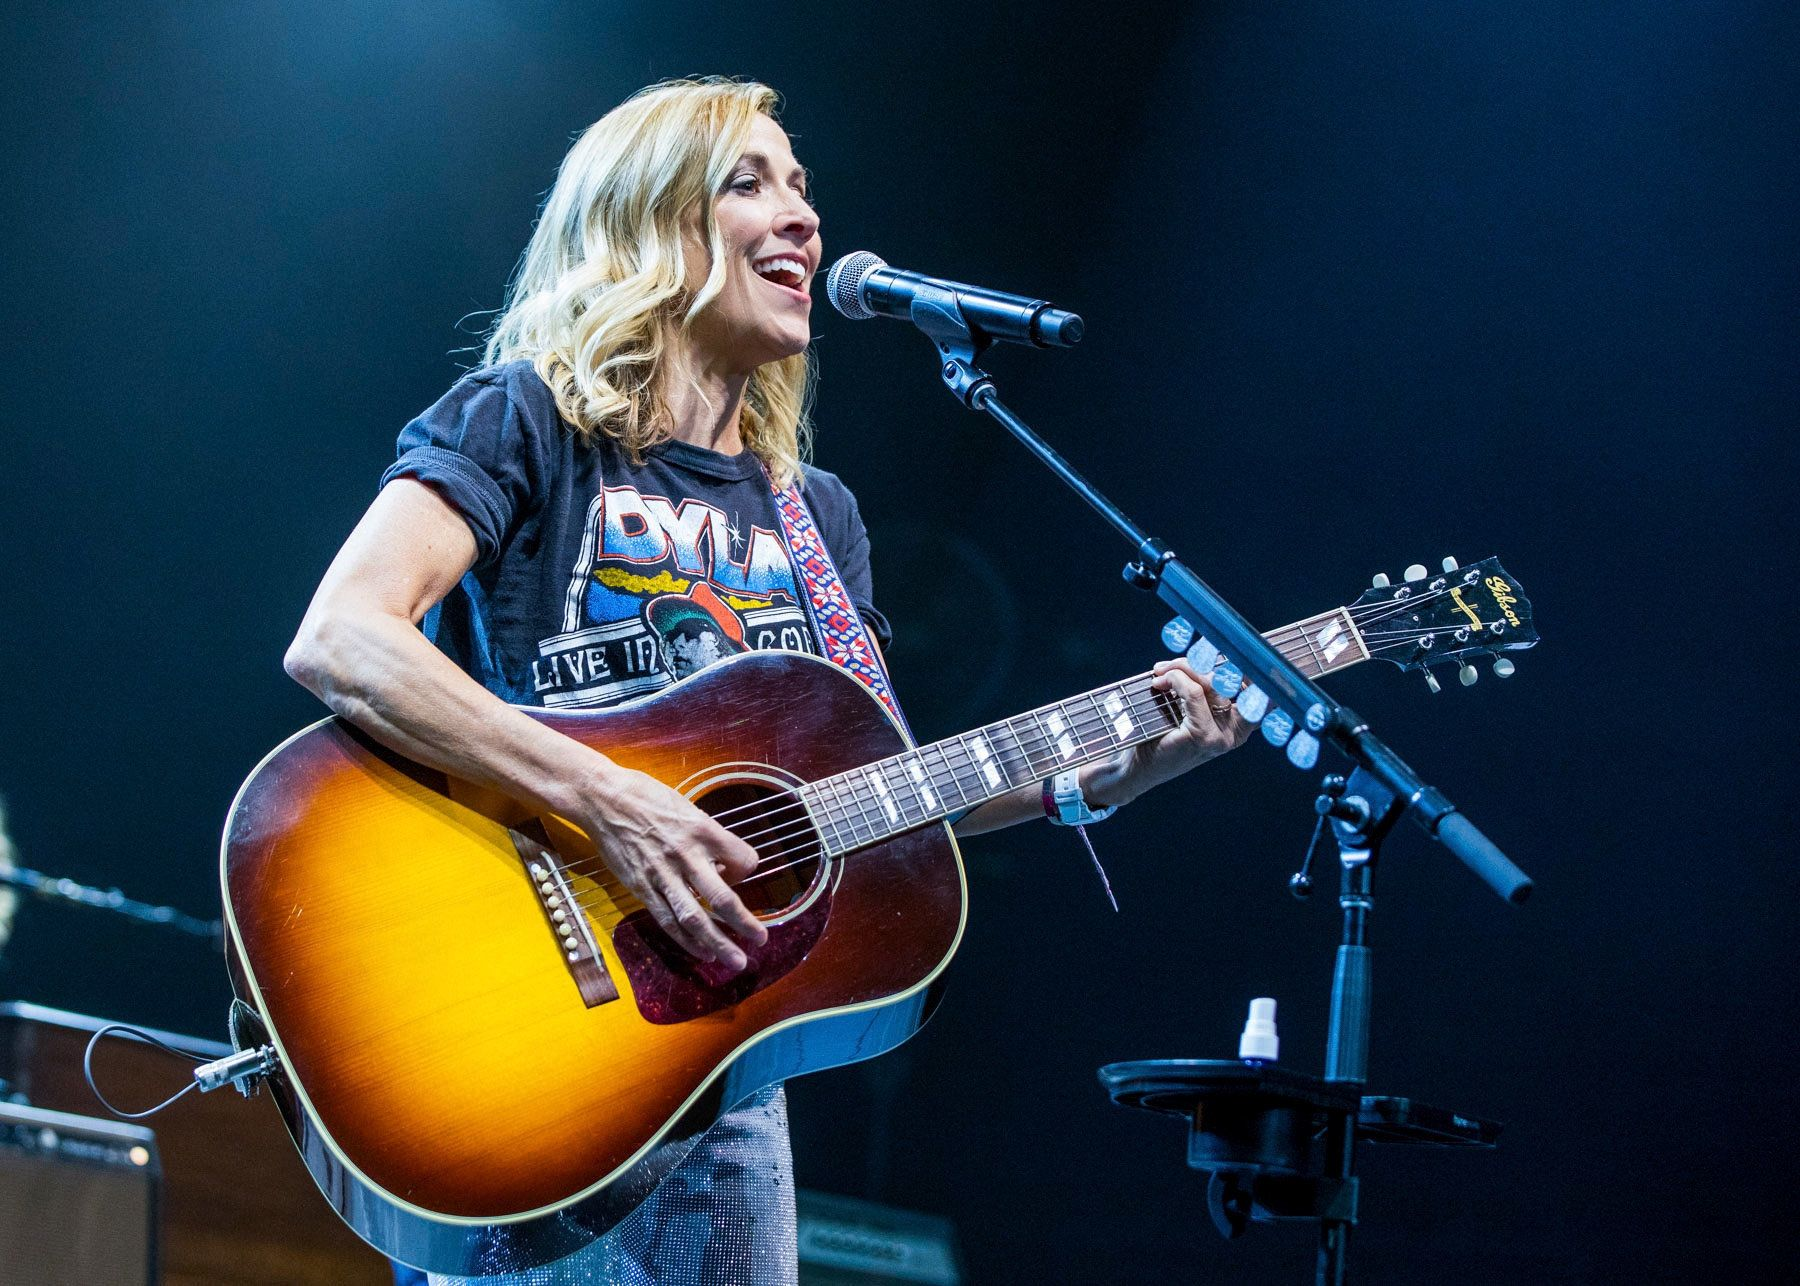 DETROIT, MI - JULY 08:  Sheryl Crow performs during The 2017 Outlaw Festival at Joe Louis Arena on July 8, 2017 in Detroit, Michigan.  (Photo by Scott Legato/Getty Images)